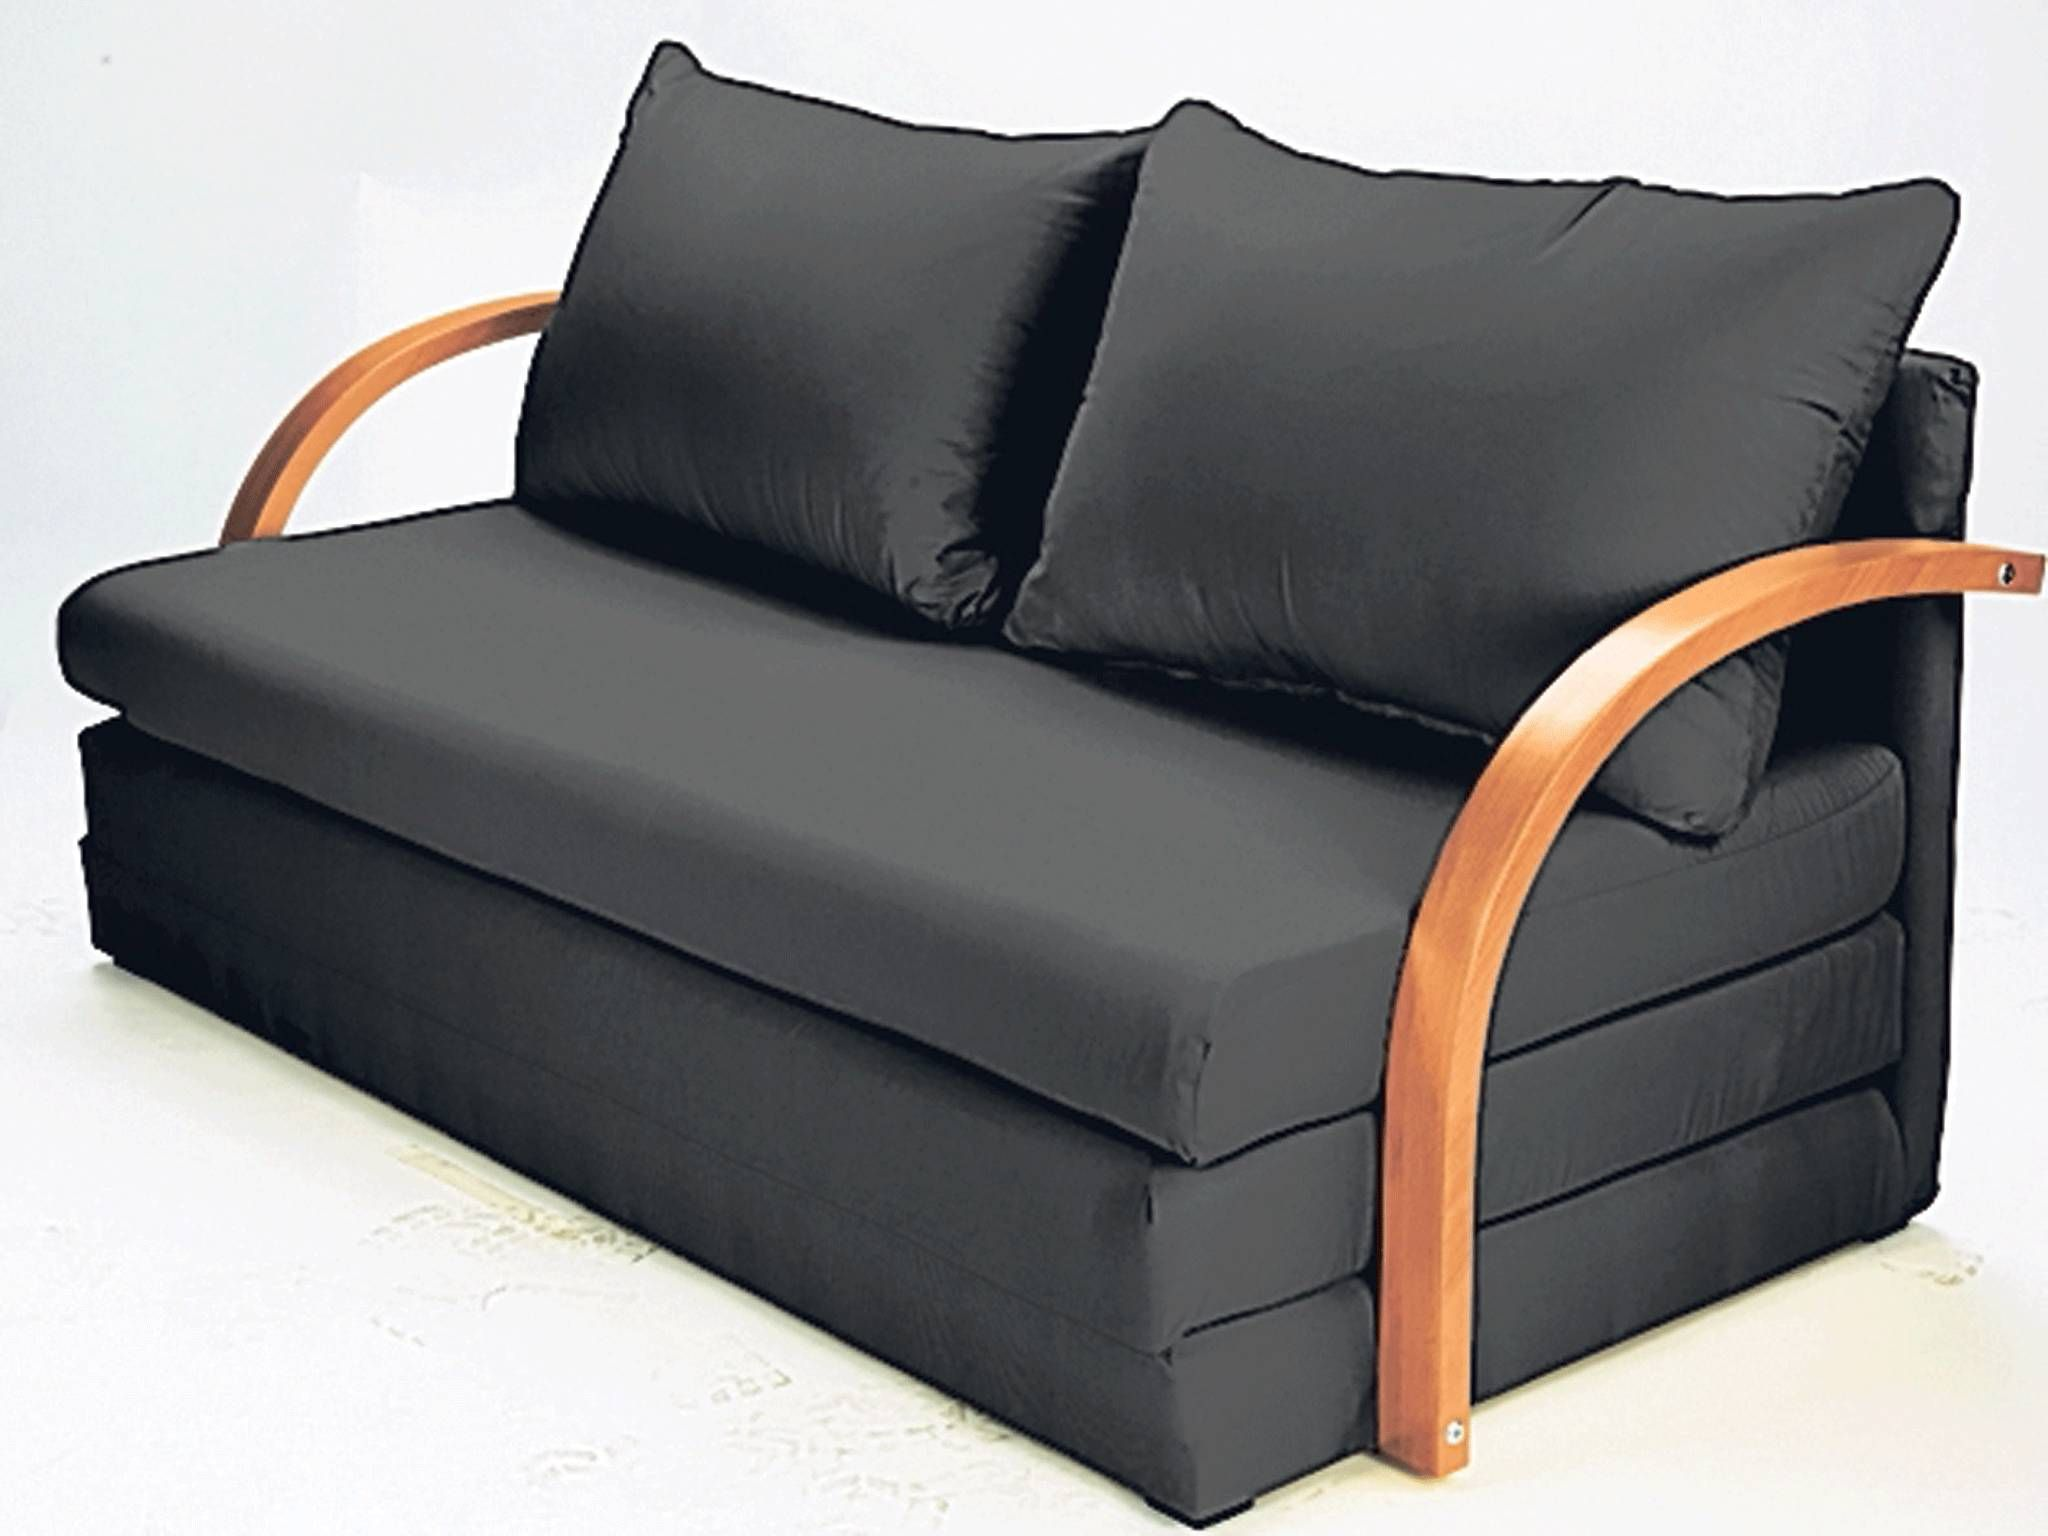 couch style sleeper slipperchair chair size full best trend of out pull modern bed a fixed and